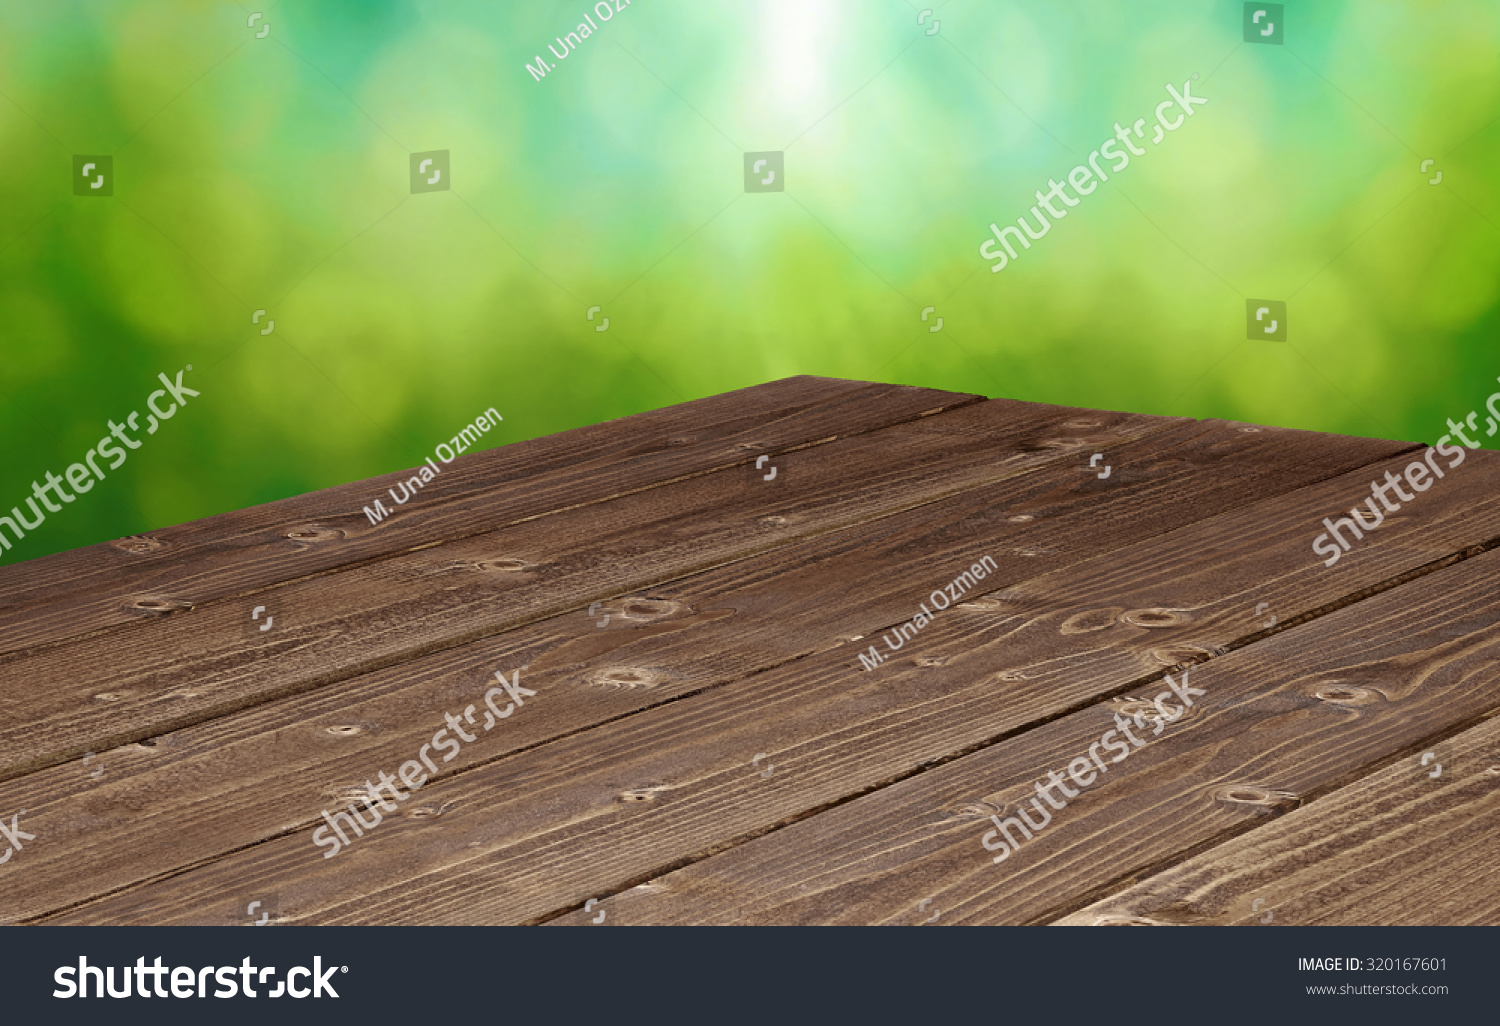 Background image table - Perspective View Of Log Table Corner On Green Background With Copyspace